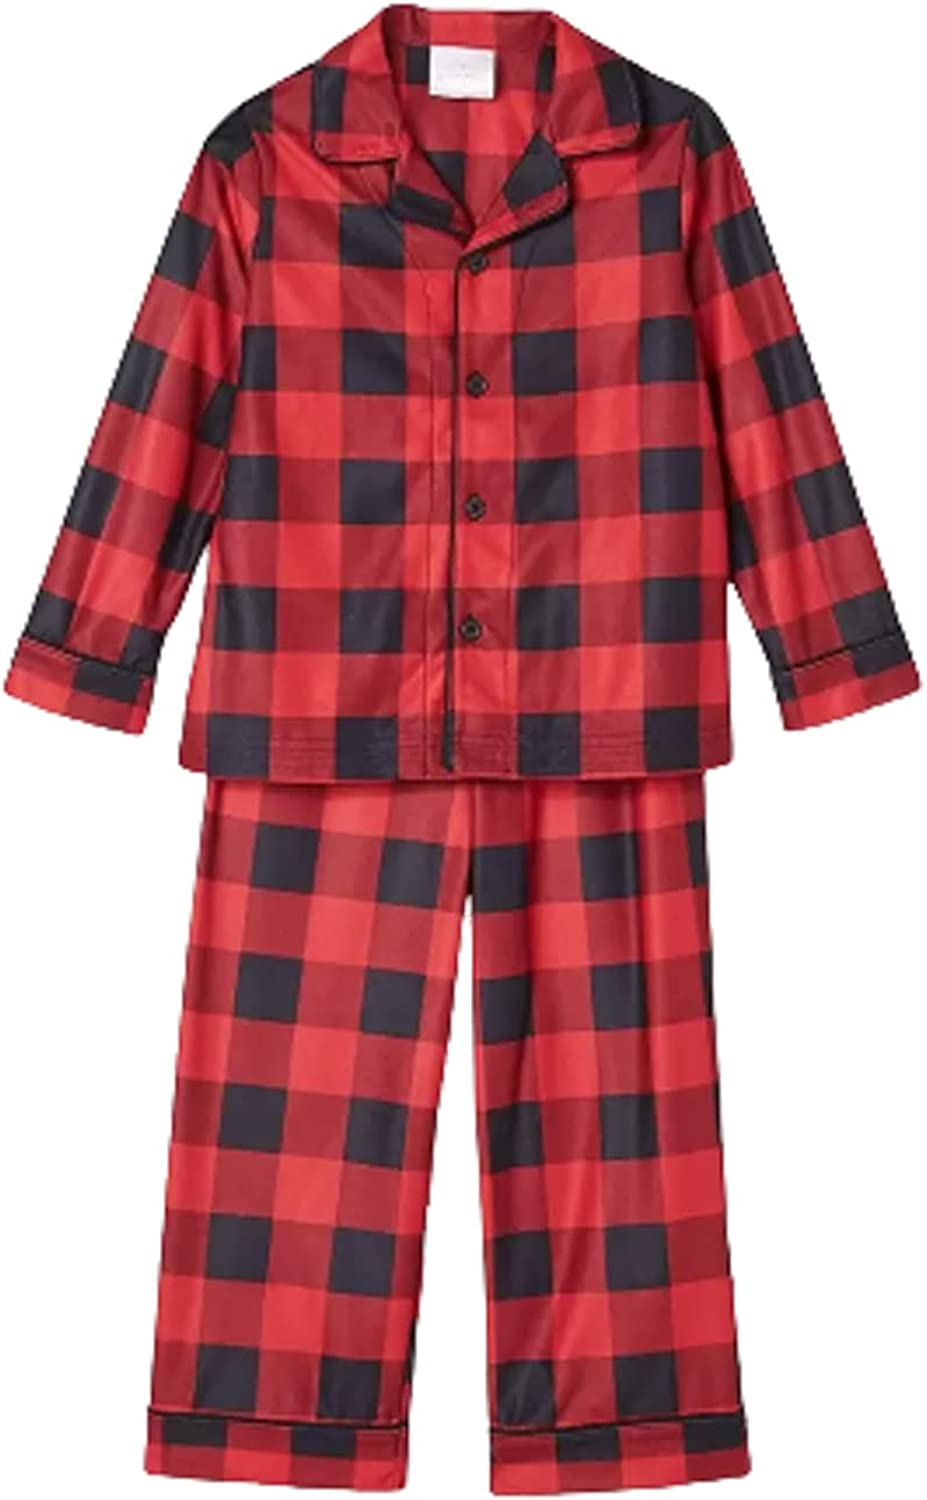 Toddler Holiday Buffalo Check Flannel 2 Piece Set (18 Months) Red